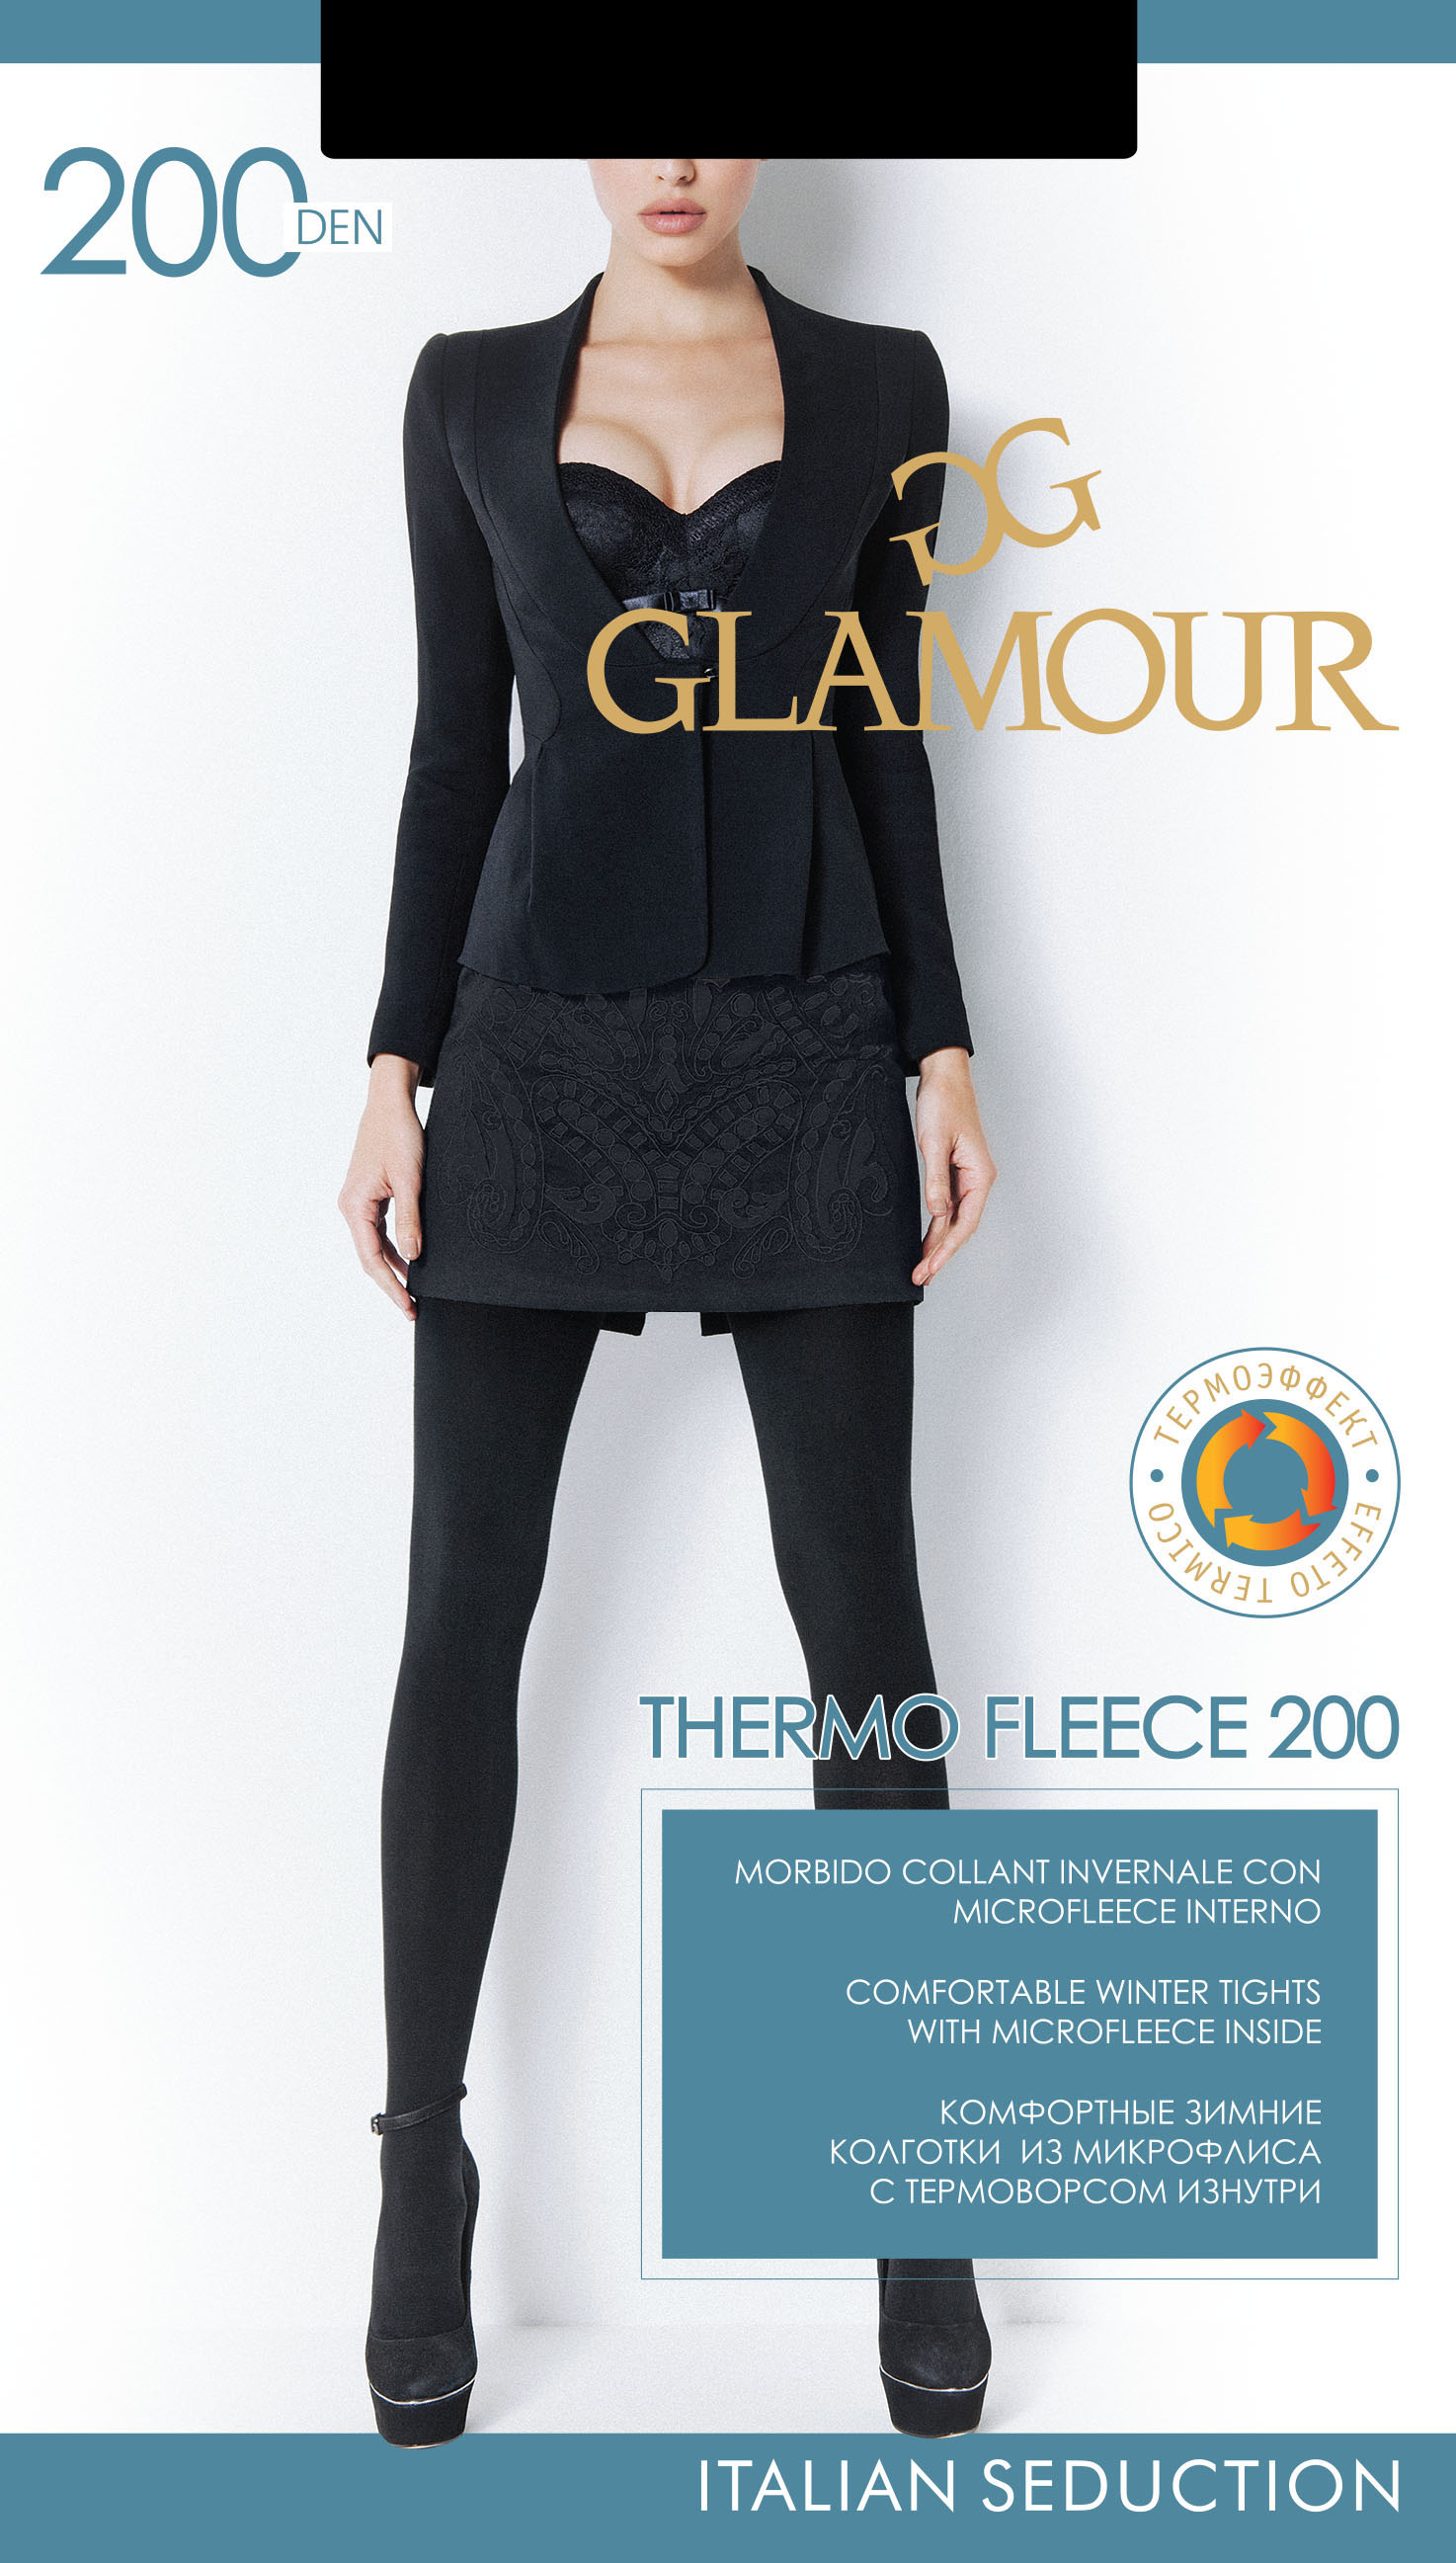 Glamour THERMO FLEECE 200, колготки